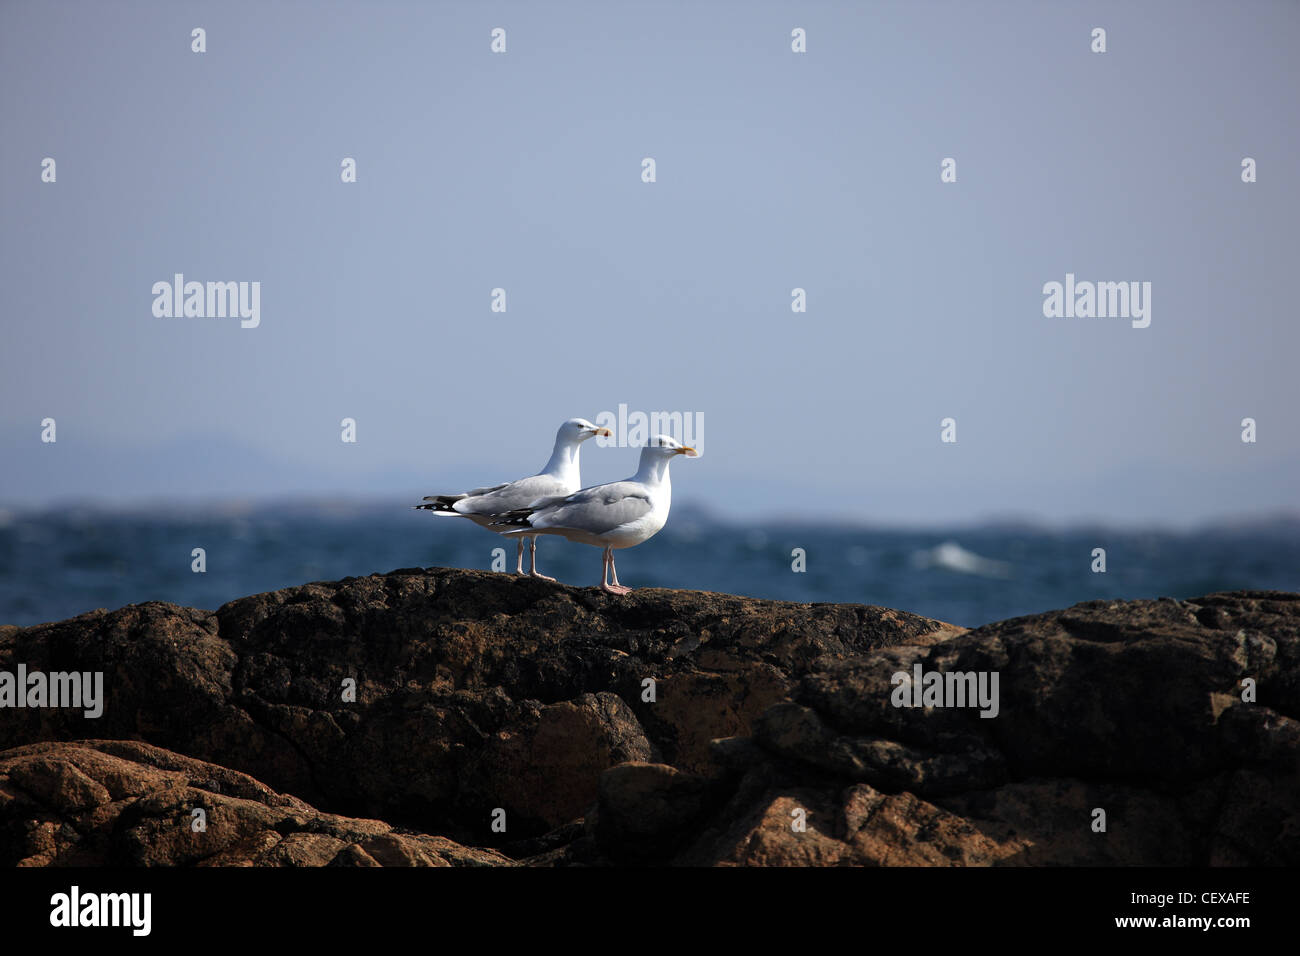 Pair of Herring Gulls on rocks by the sea - Stock Image